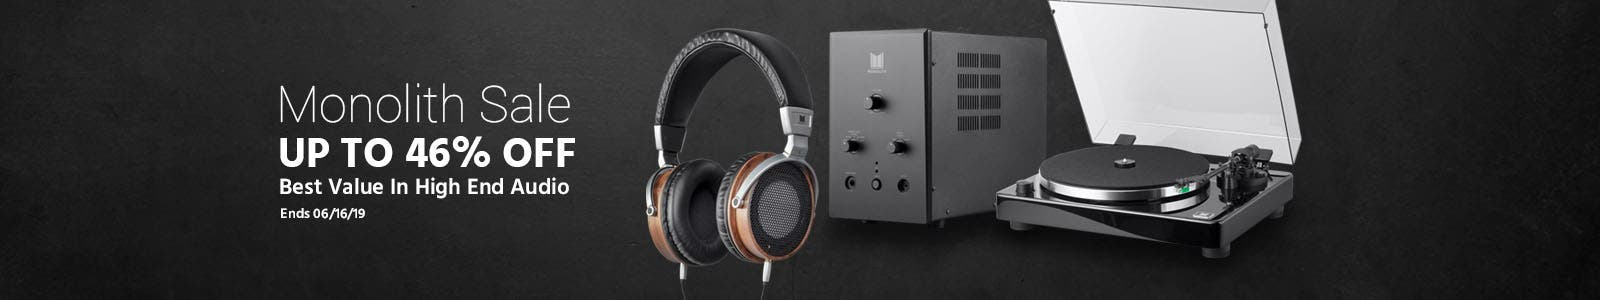 Monolith Sale, up to 39% off, best value in high end audio, ends 02/10/19